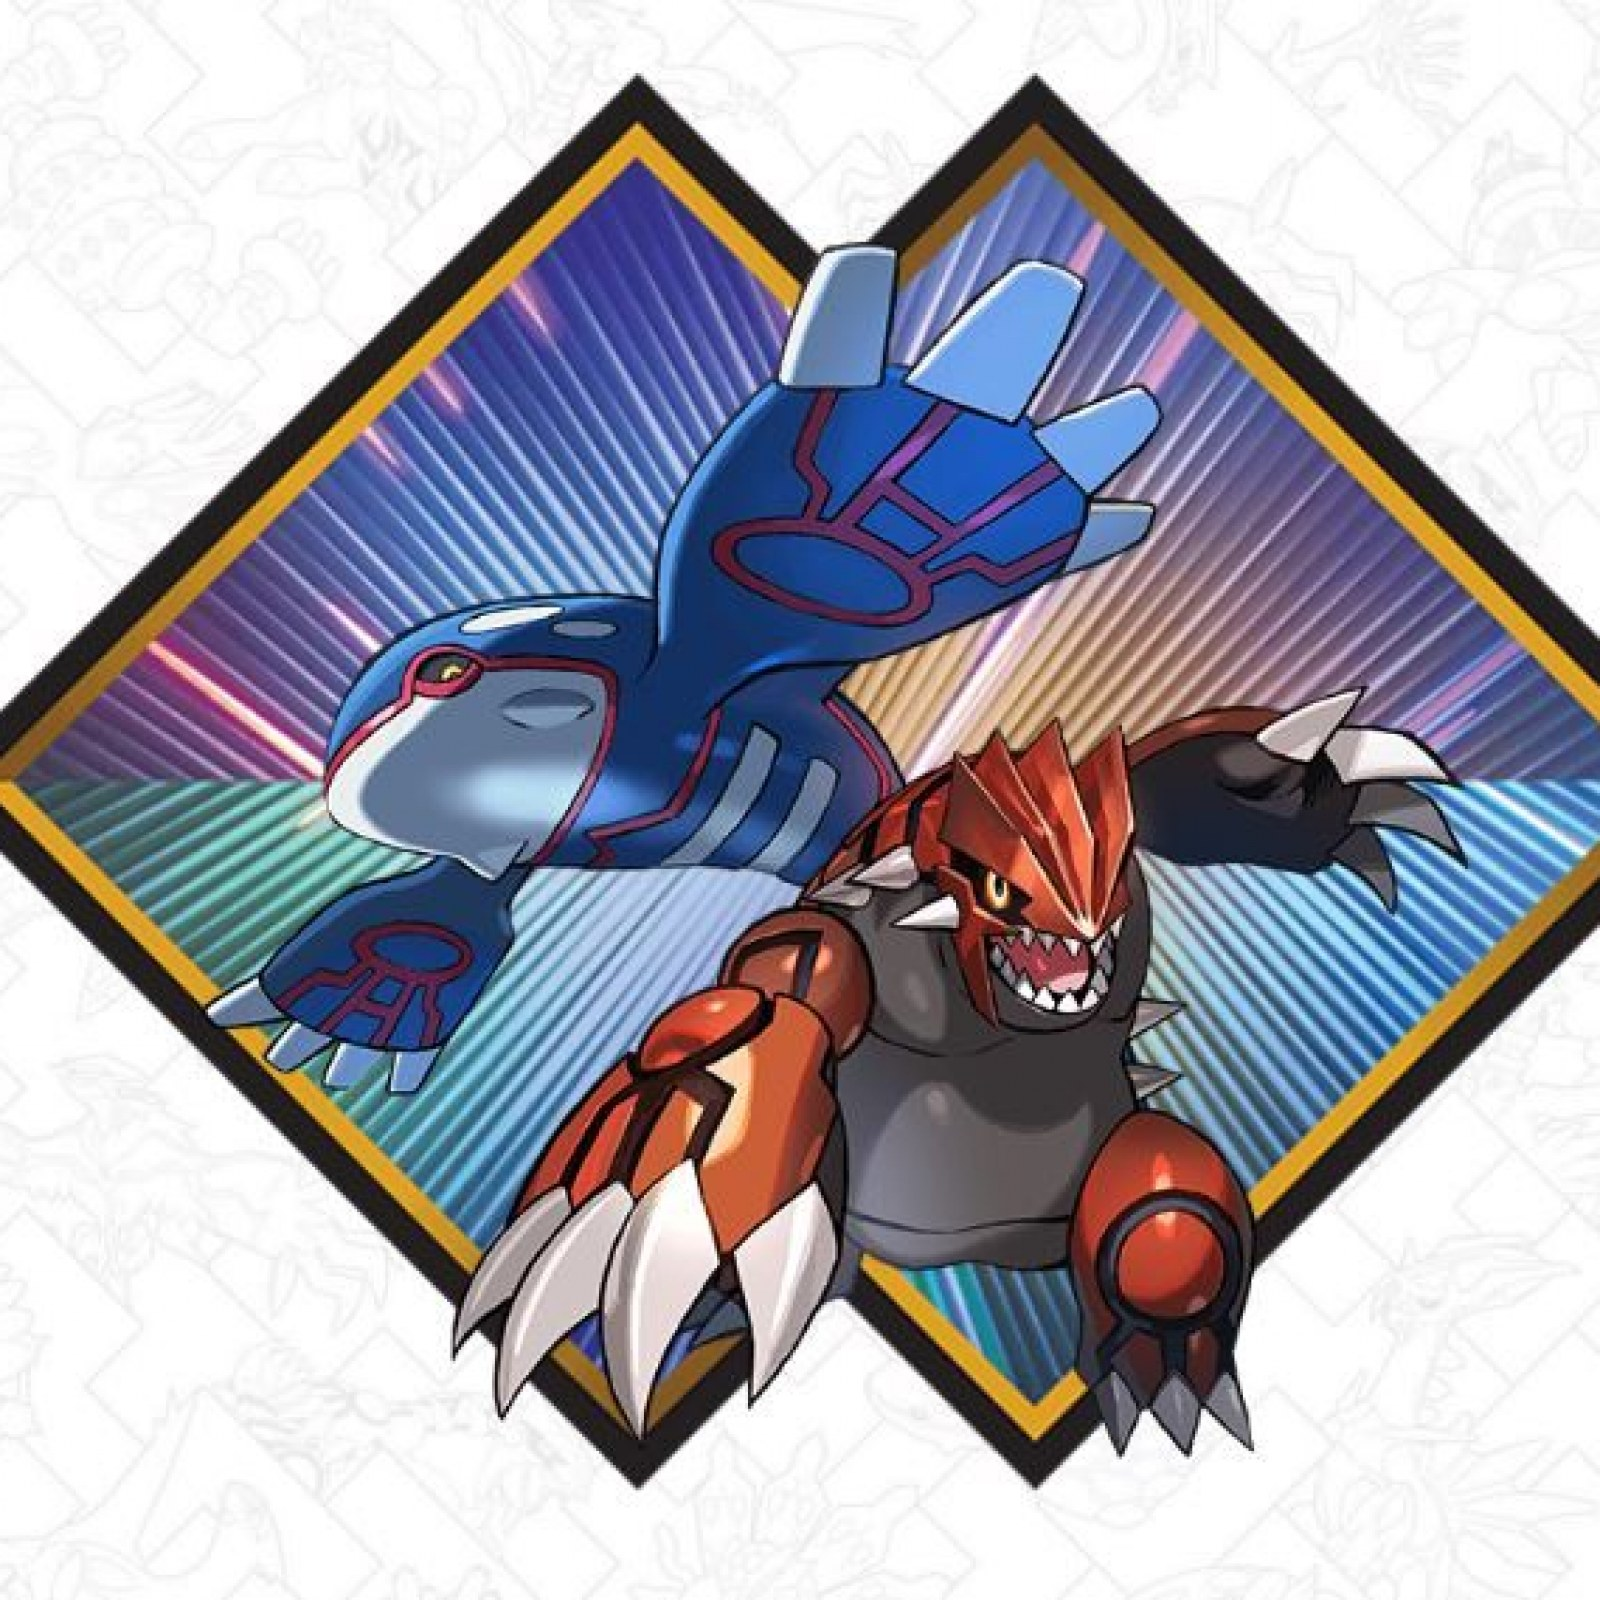 Pokémon Kyogre, Groudon Distribution: How to Get August